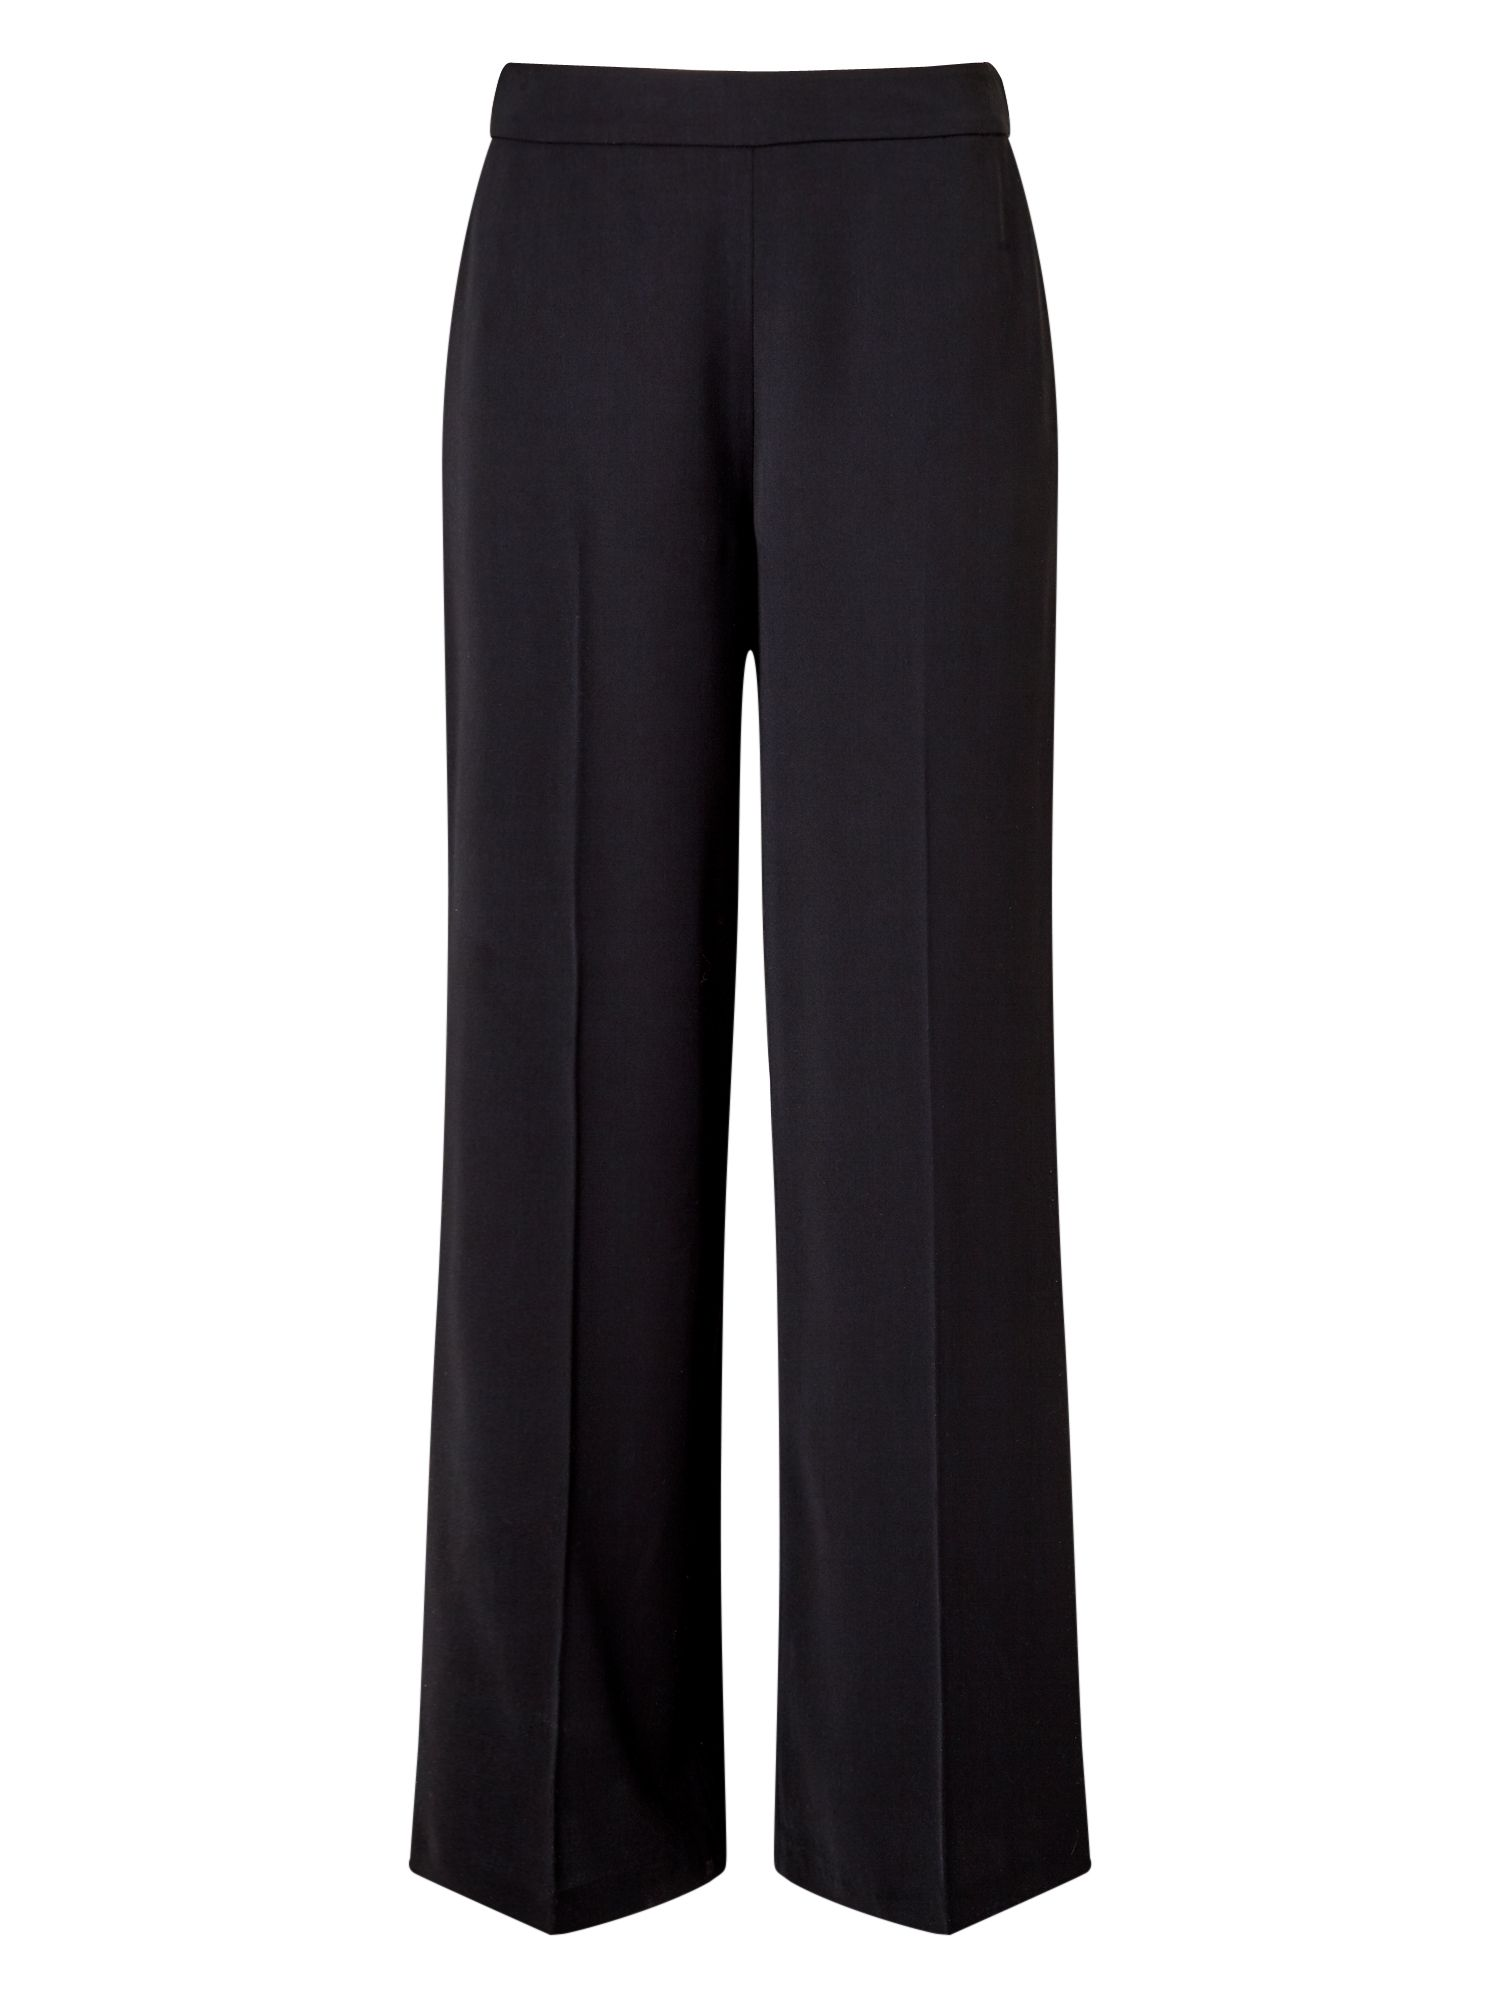 Jacques Vert Drape Crepe Fluid Trouser, Black